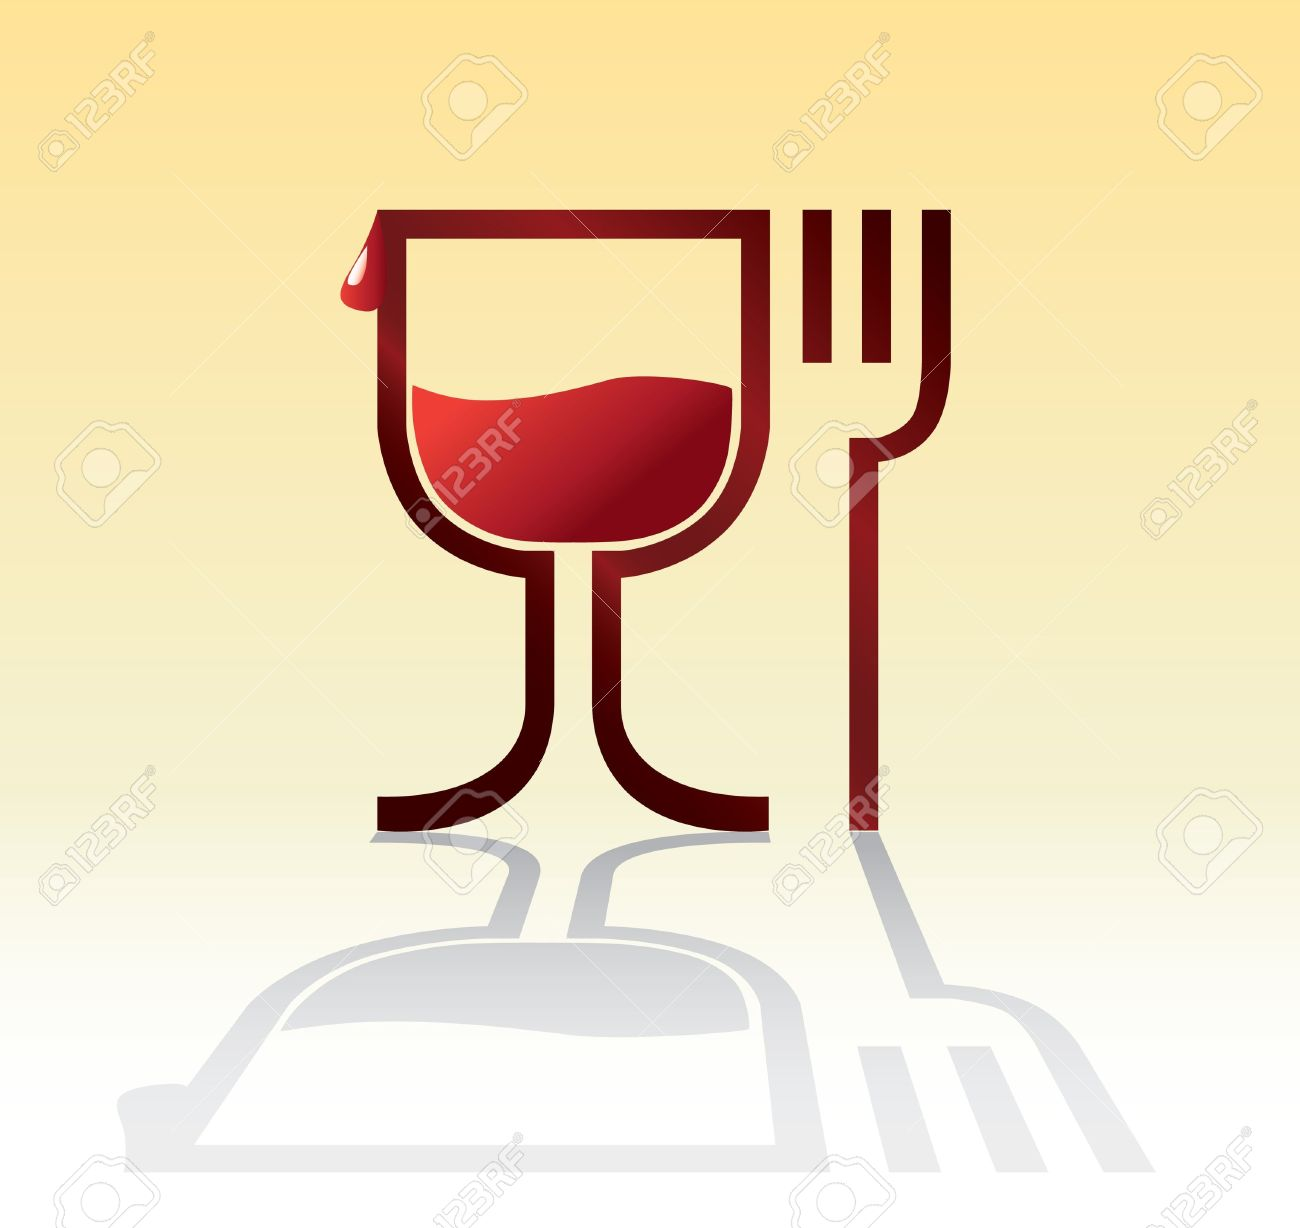 Eat Drink Symbol With Wine.